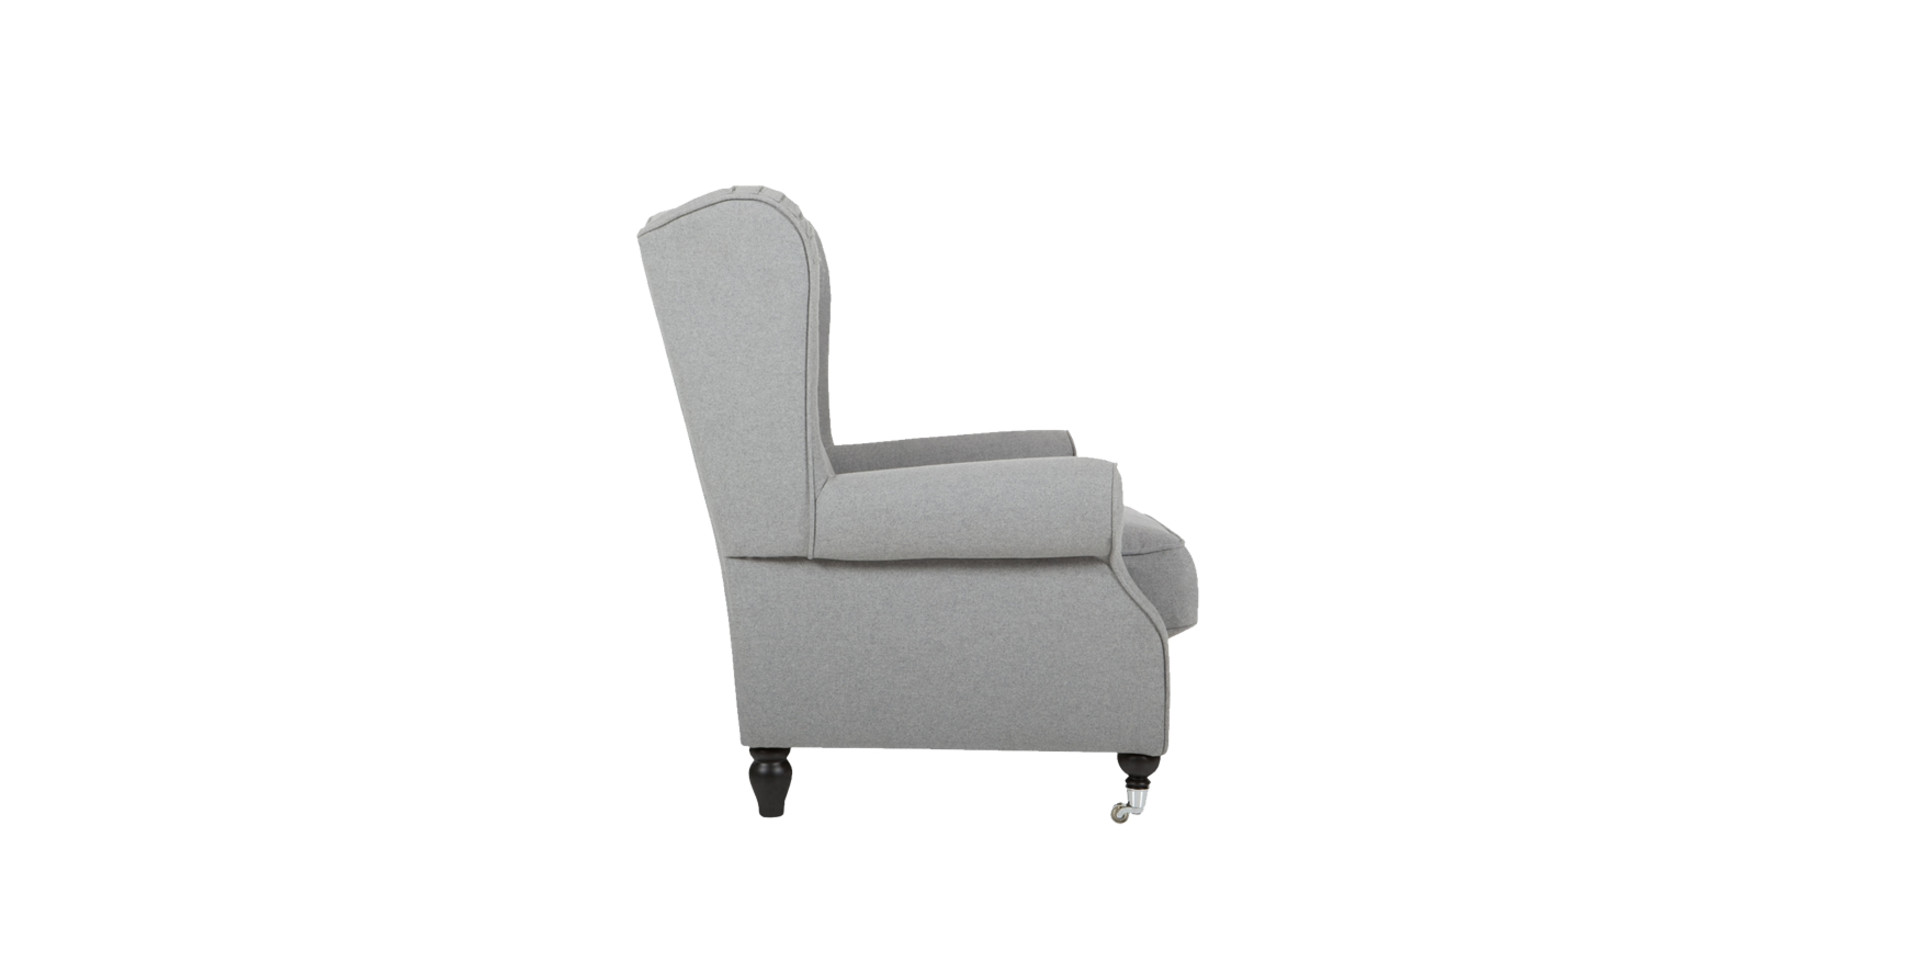 sits-humphrey-fauteuil-armchair_high_panno1000_light_grey_3